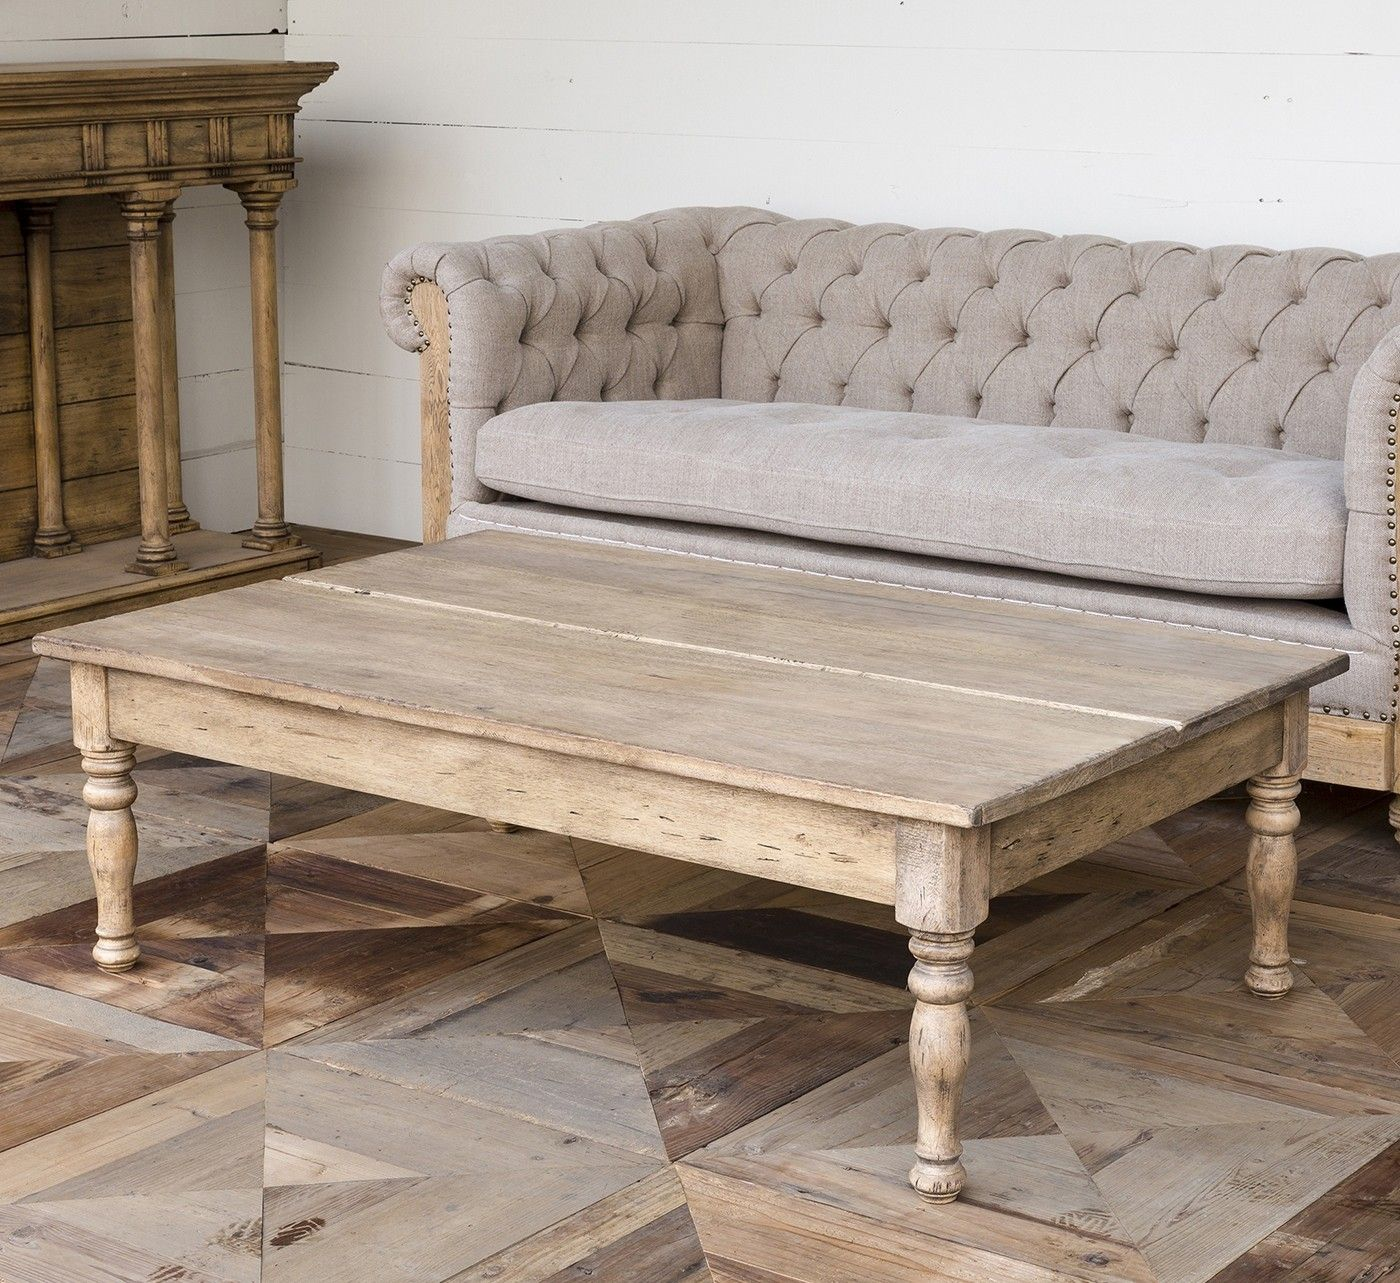 This Classic Park Hill Manor Coffee Table Provides A Beautiful Wide Surface To Create A Comfortable Coffee Table Farmhouse Style Coffee Table Iron Coffee Table